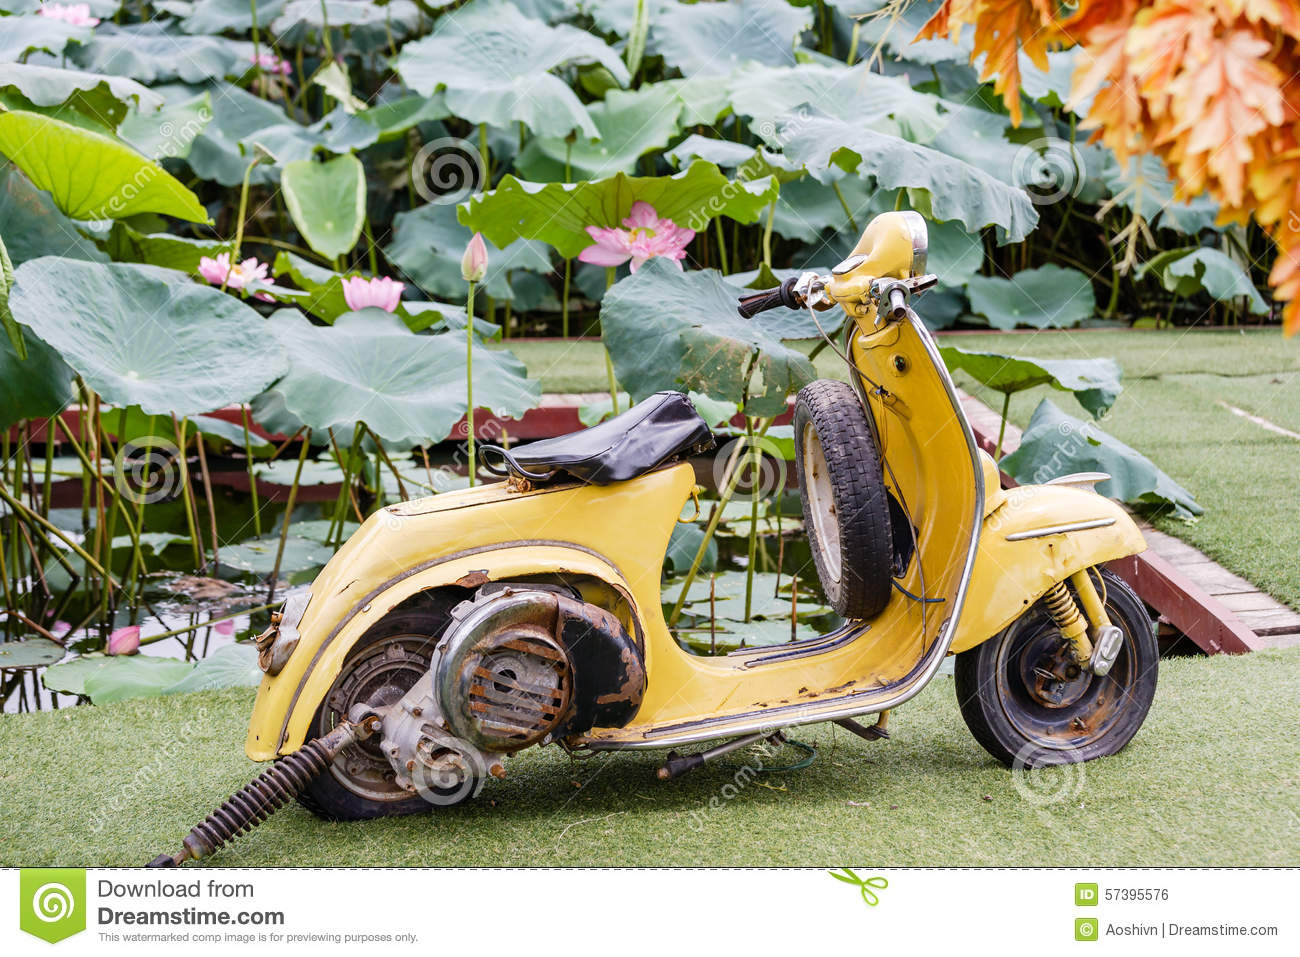 Oude motorbycycle